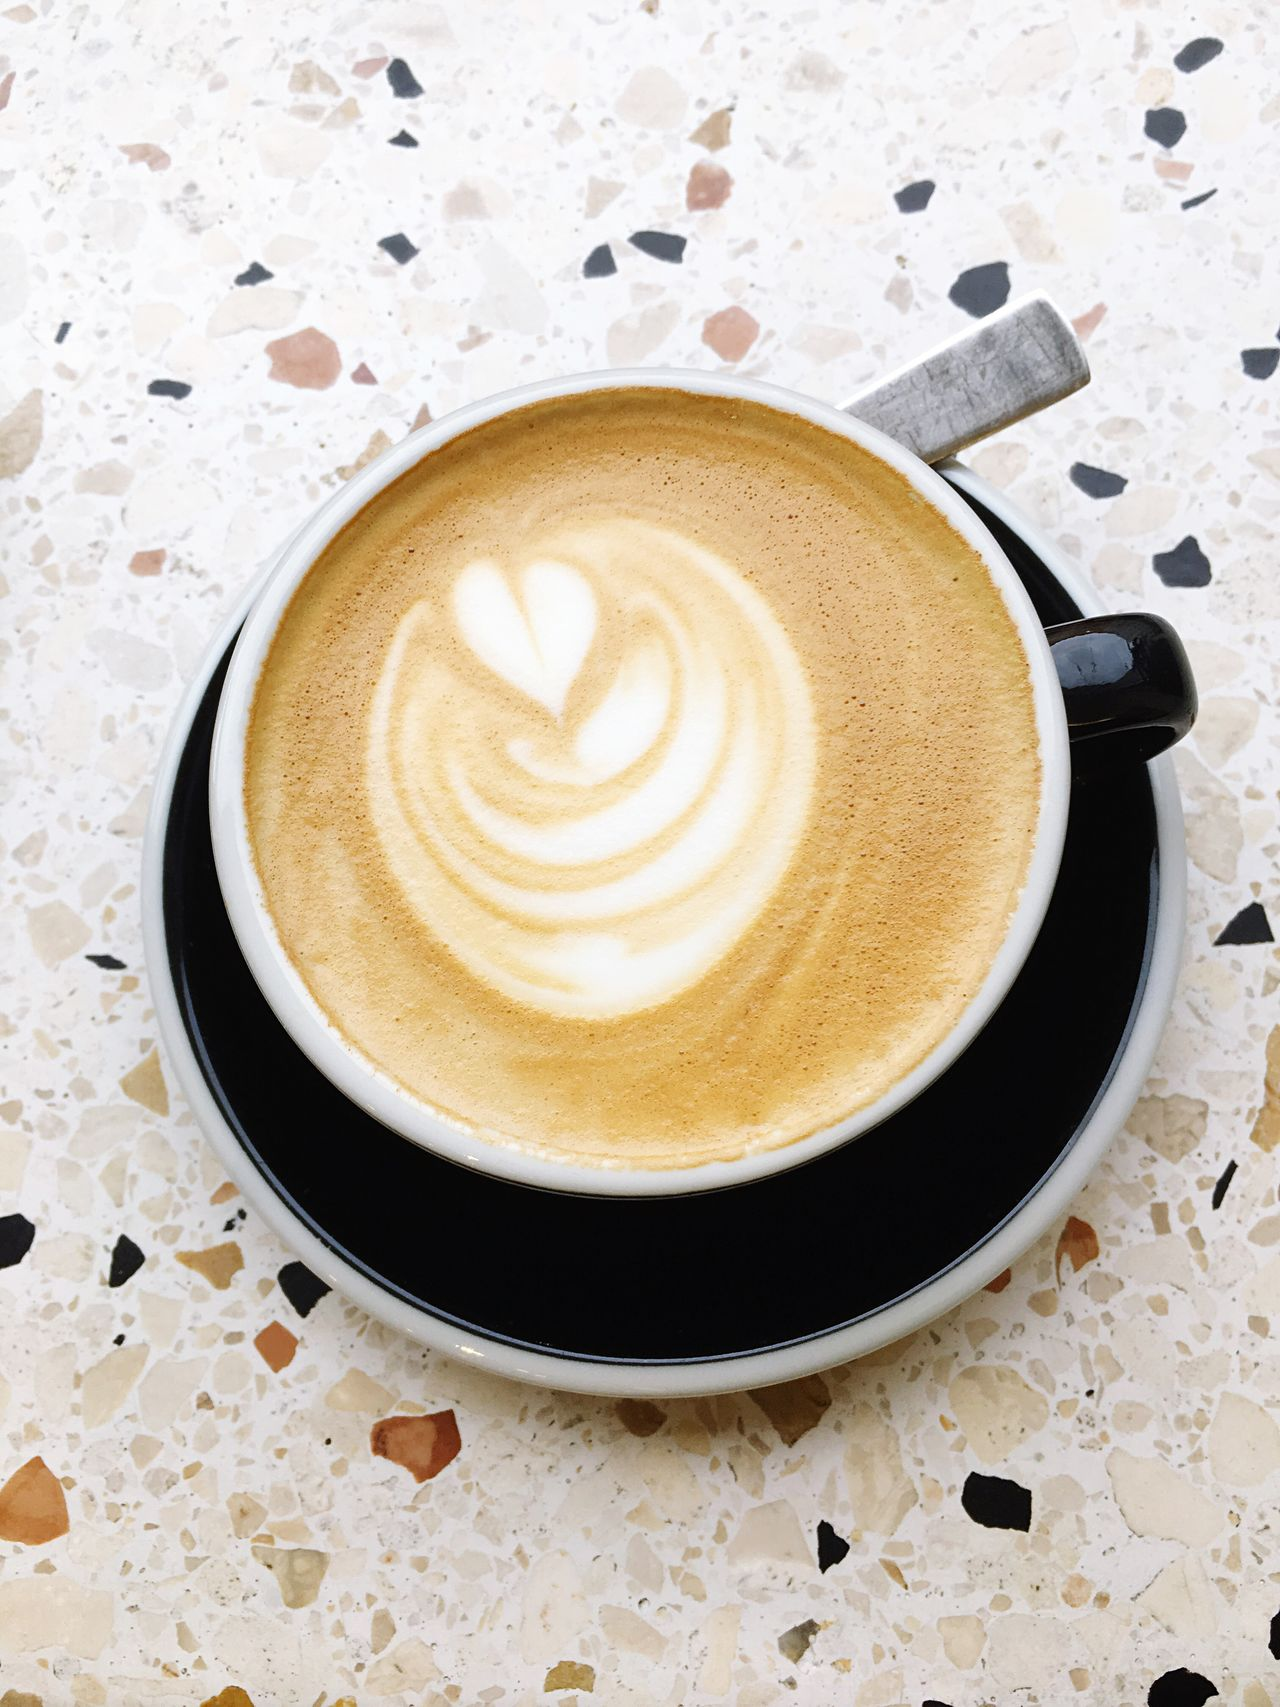 Coffee - Drink Coffee Cup Drink Food And Drink Cappuccino Refreshment Frothy Drink Froth Art Latte Saucer Table Espresso Cafe Indoors  No People High Angle View Mocha Close-up Freshness Day